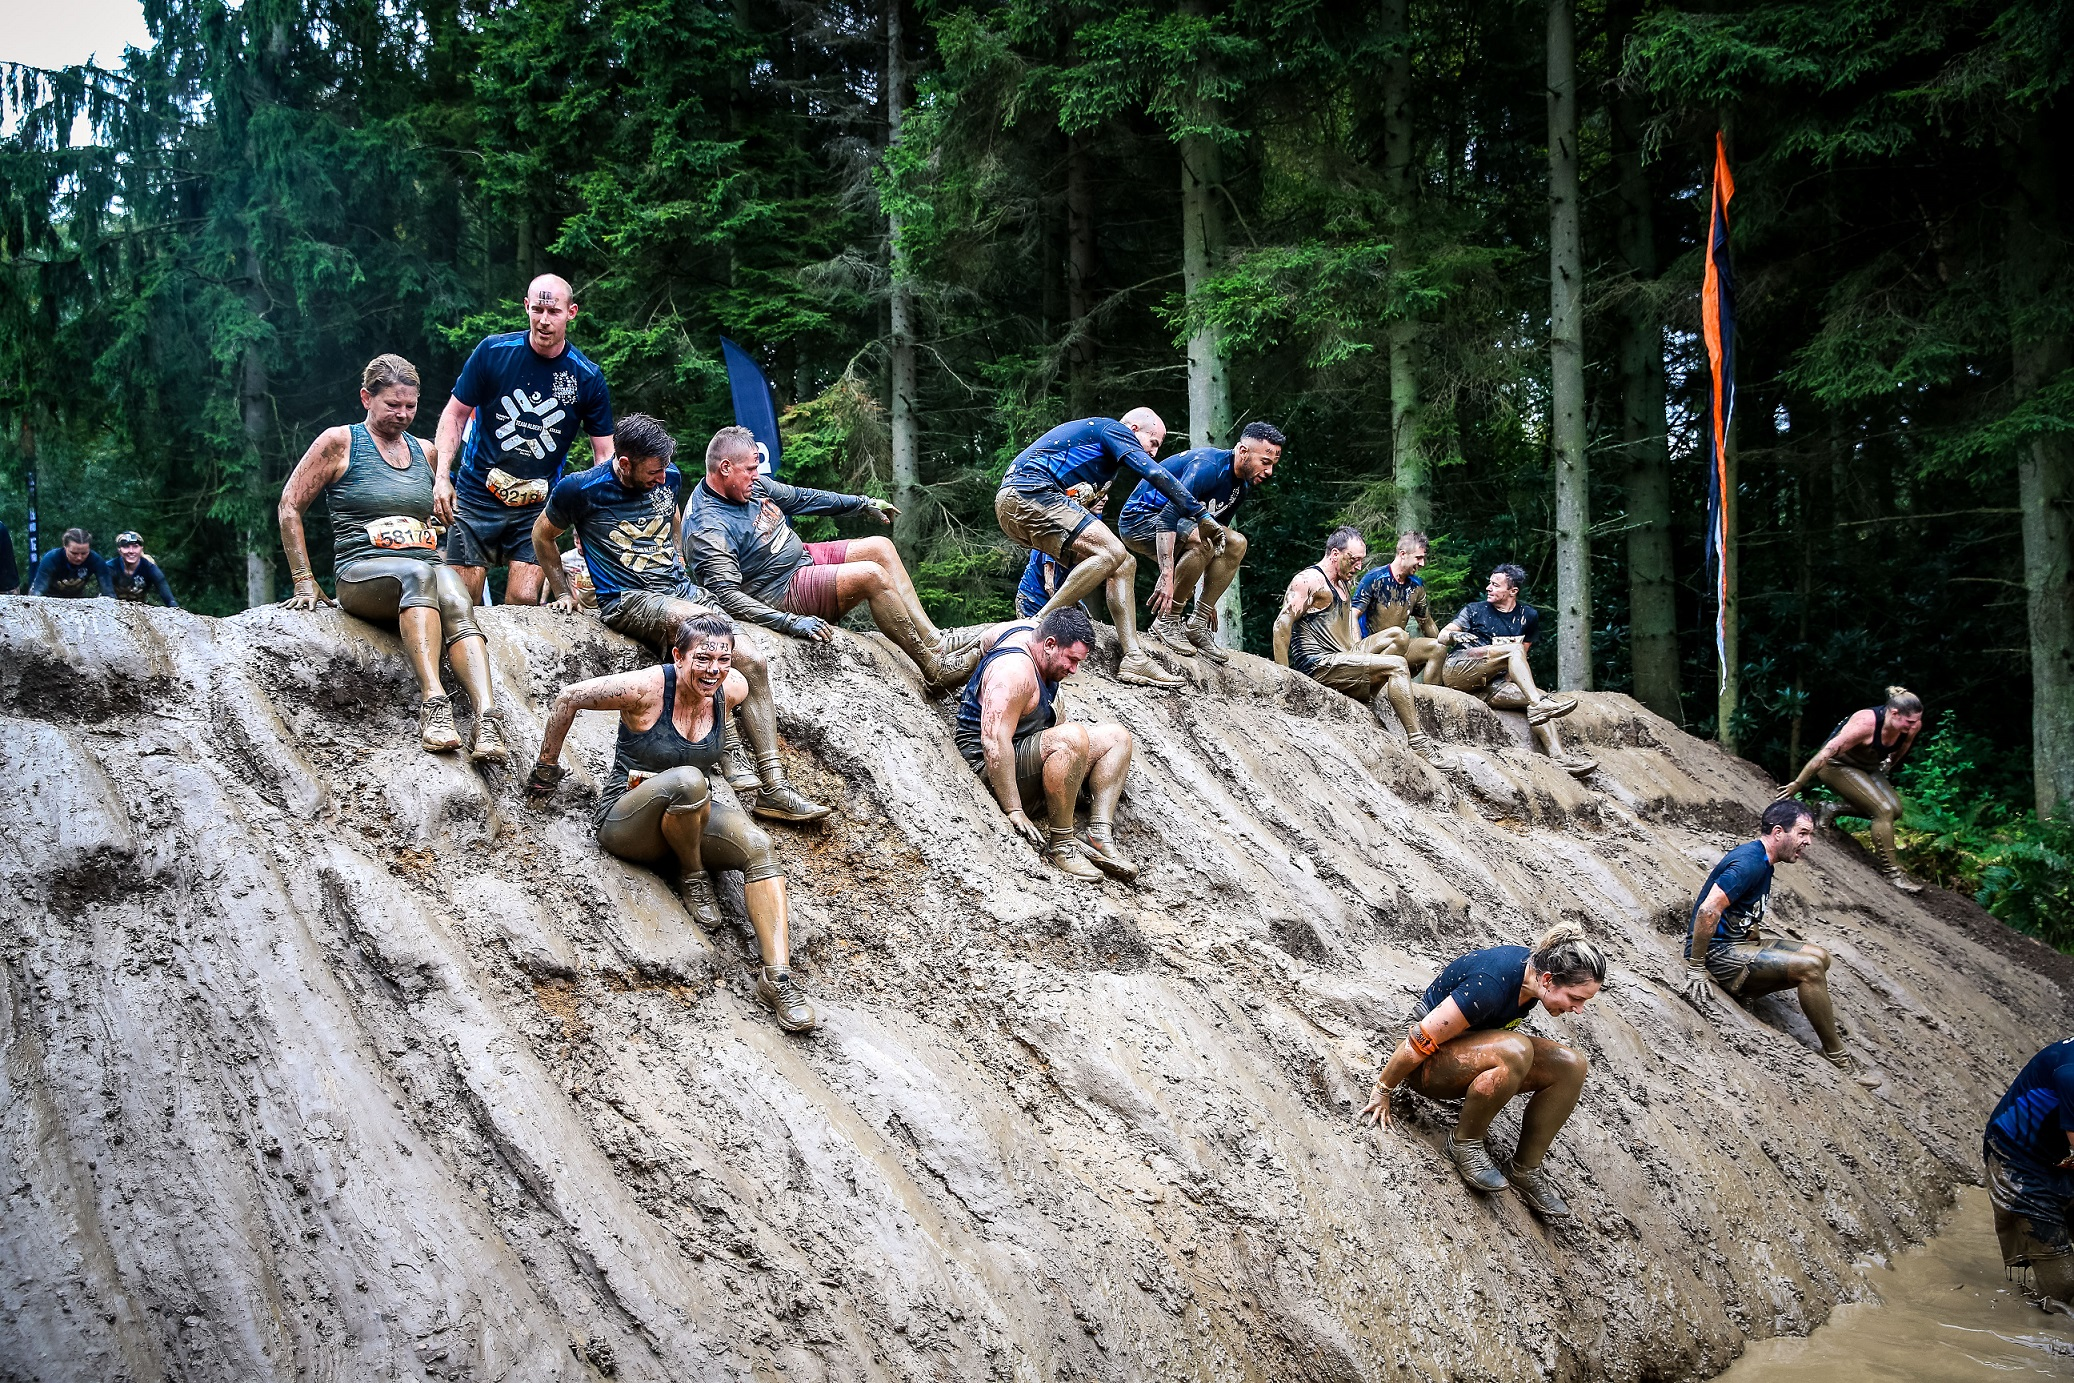 Tough Mudder Comes to the Midlands for Three Epic Events Across Two Weekends